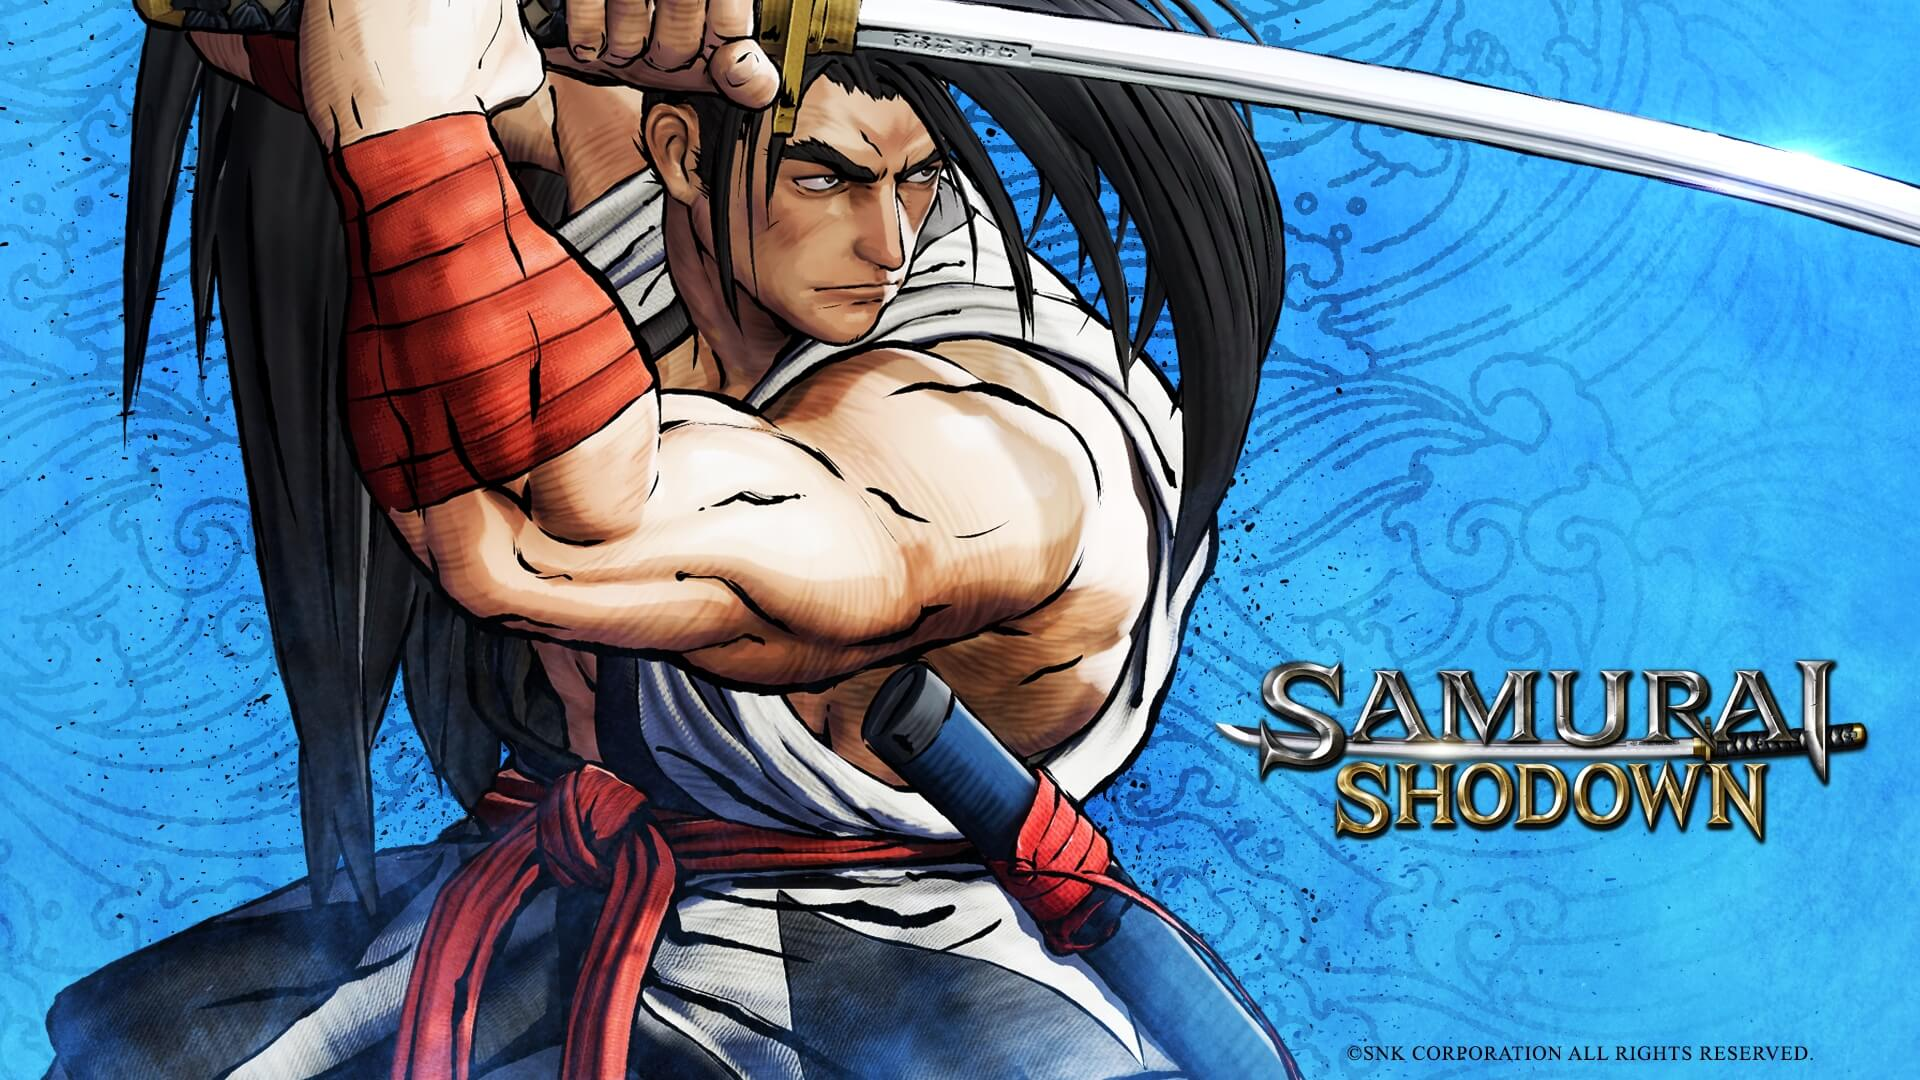 DeveloperInterview_Samurai_Shodown_002.jpg